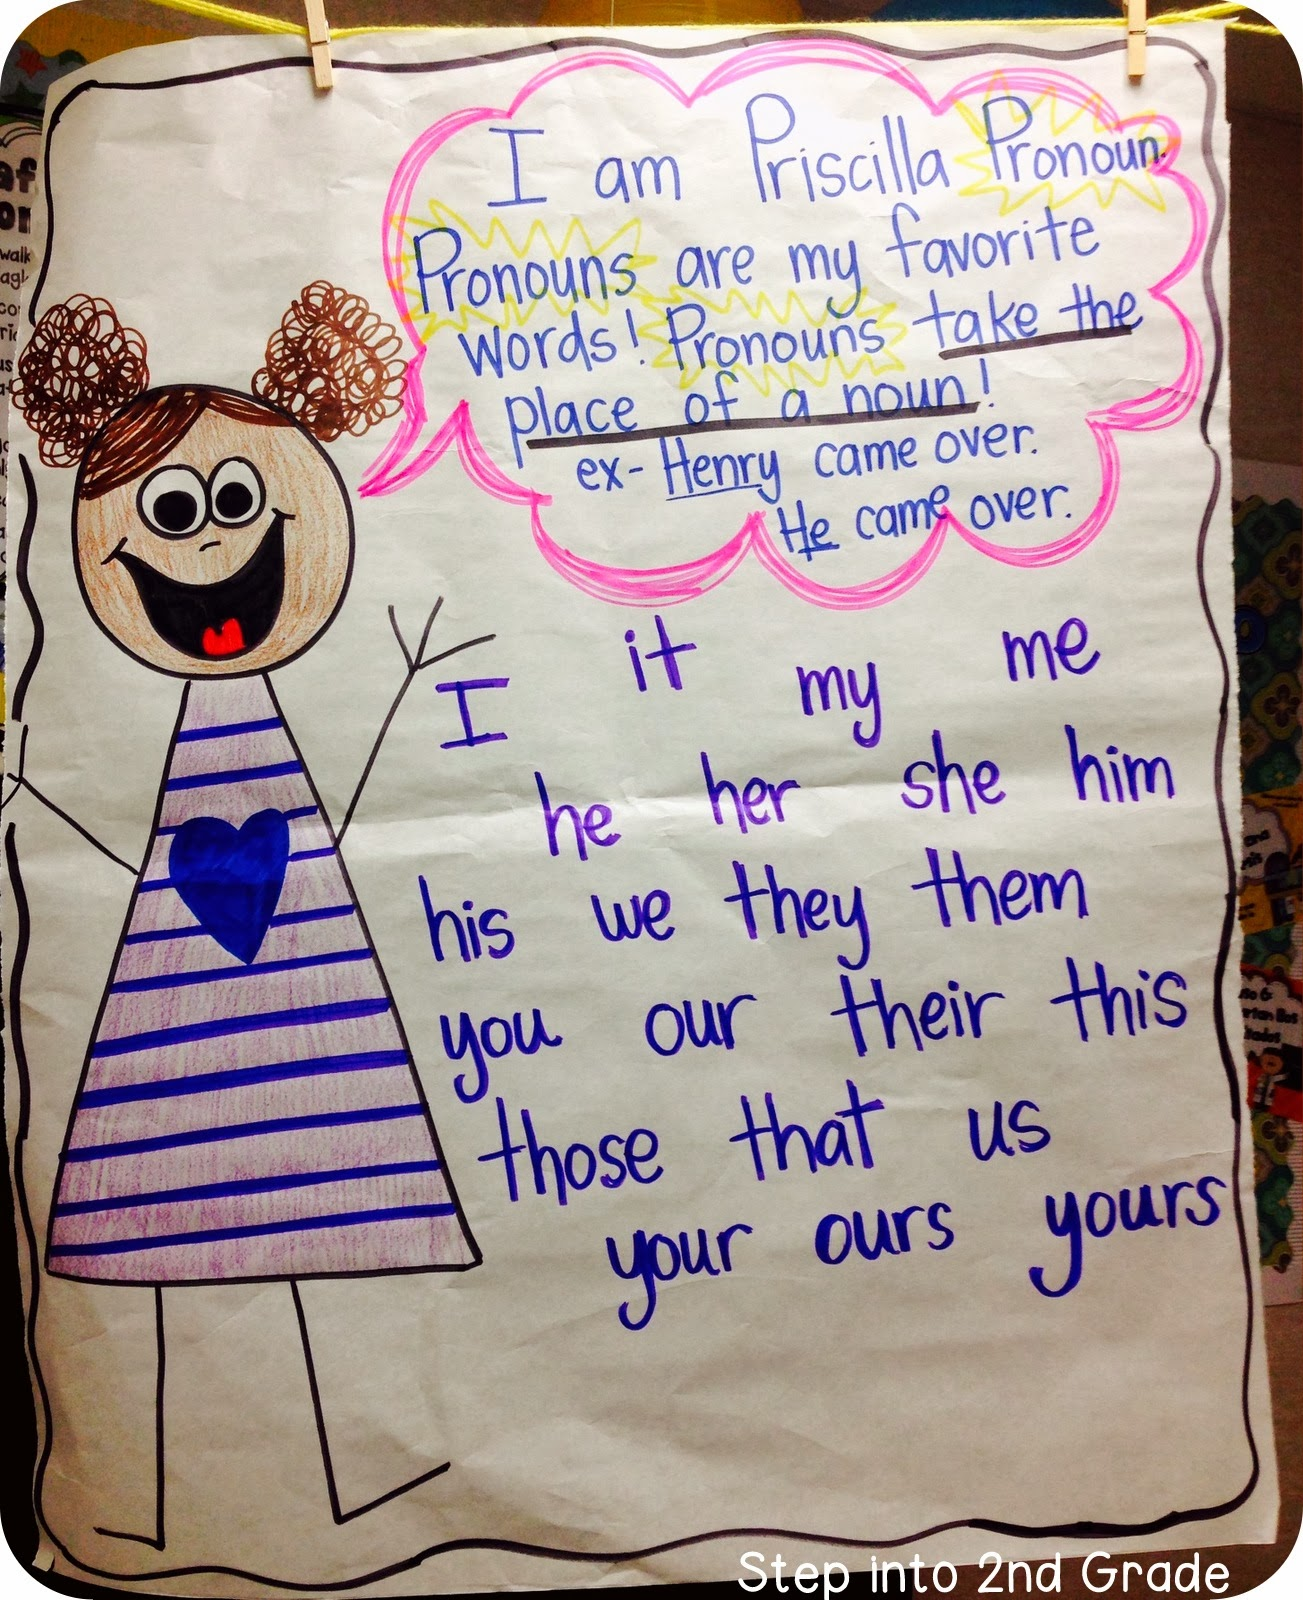 Step into 2nd Grade with Mrs. Lemons: Pronouns!